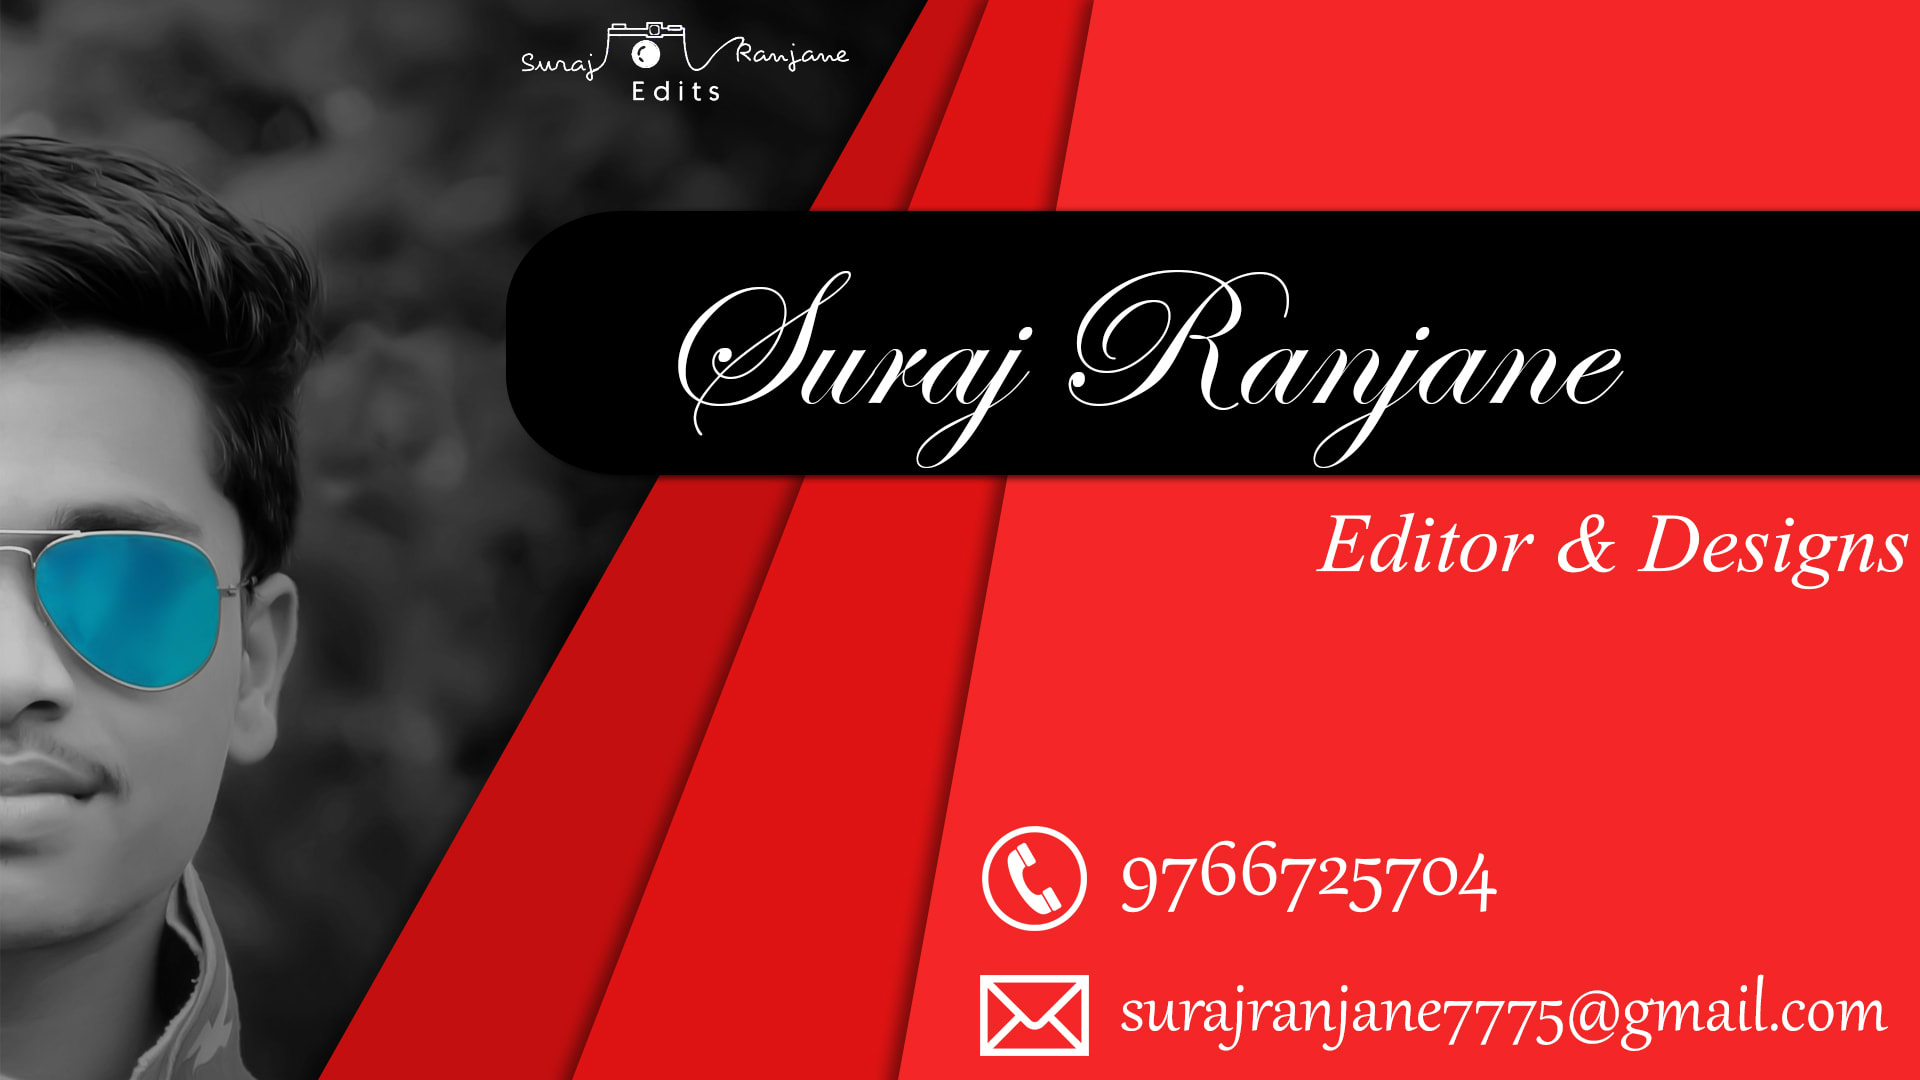 Business cards and wedding cards by Surajranjane